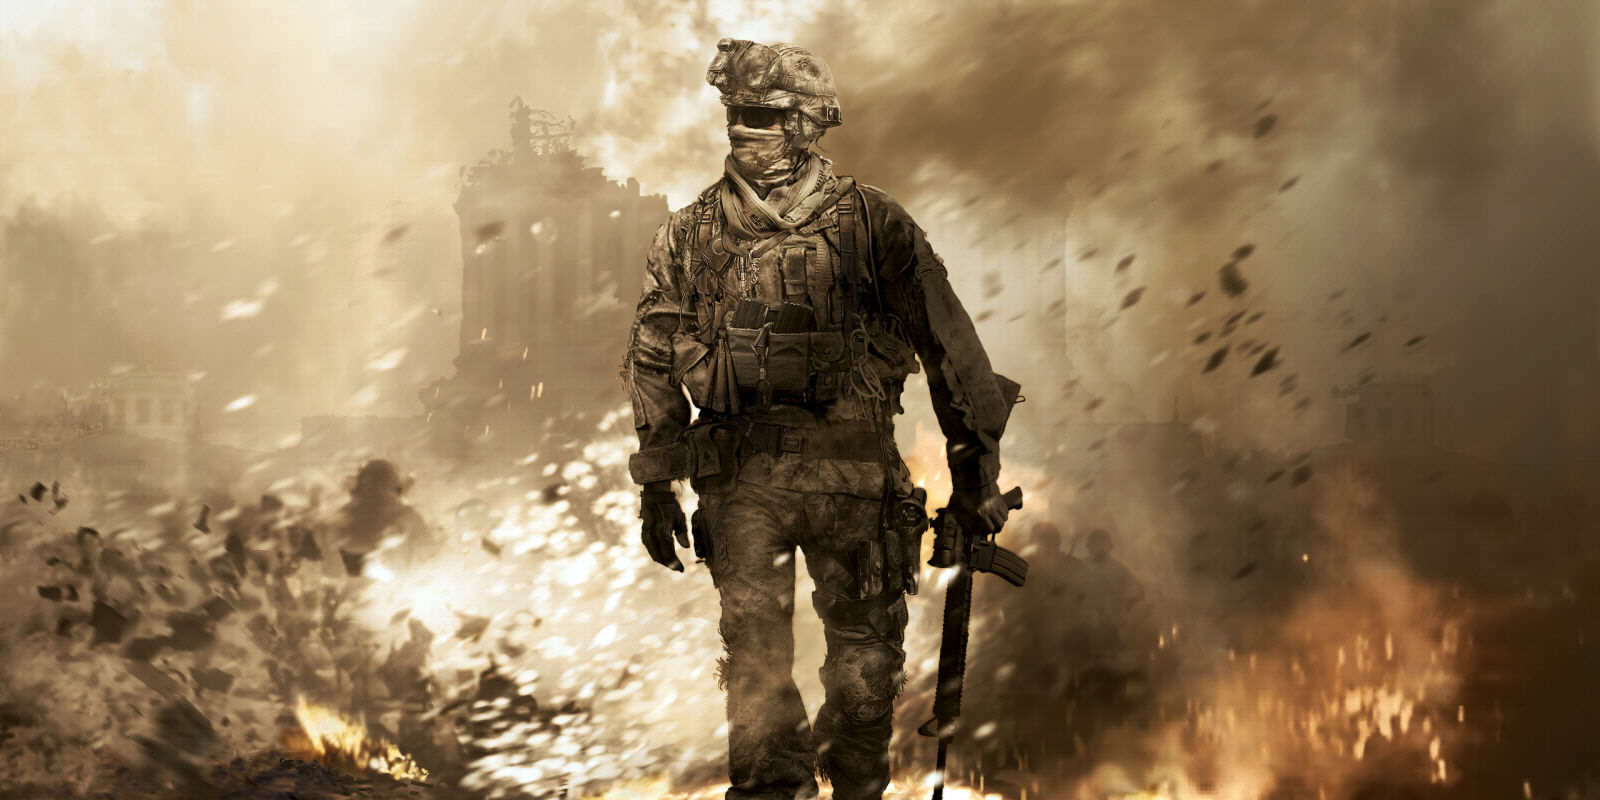 landscape-1456759219-14993-call-of-duty-4-modern-warfare-game-desktop-wallpaper-2560x1600